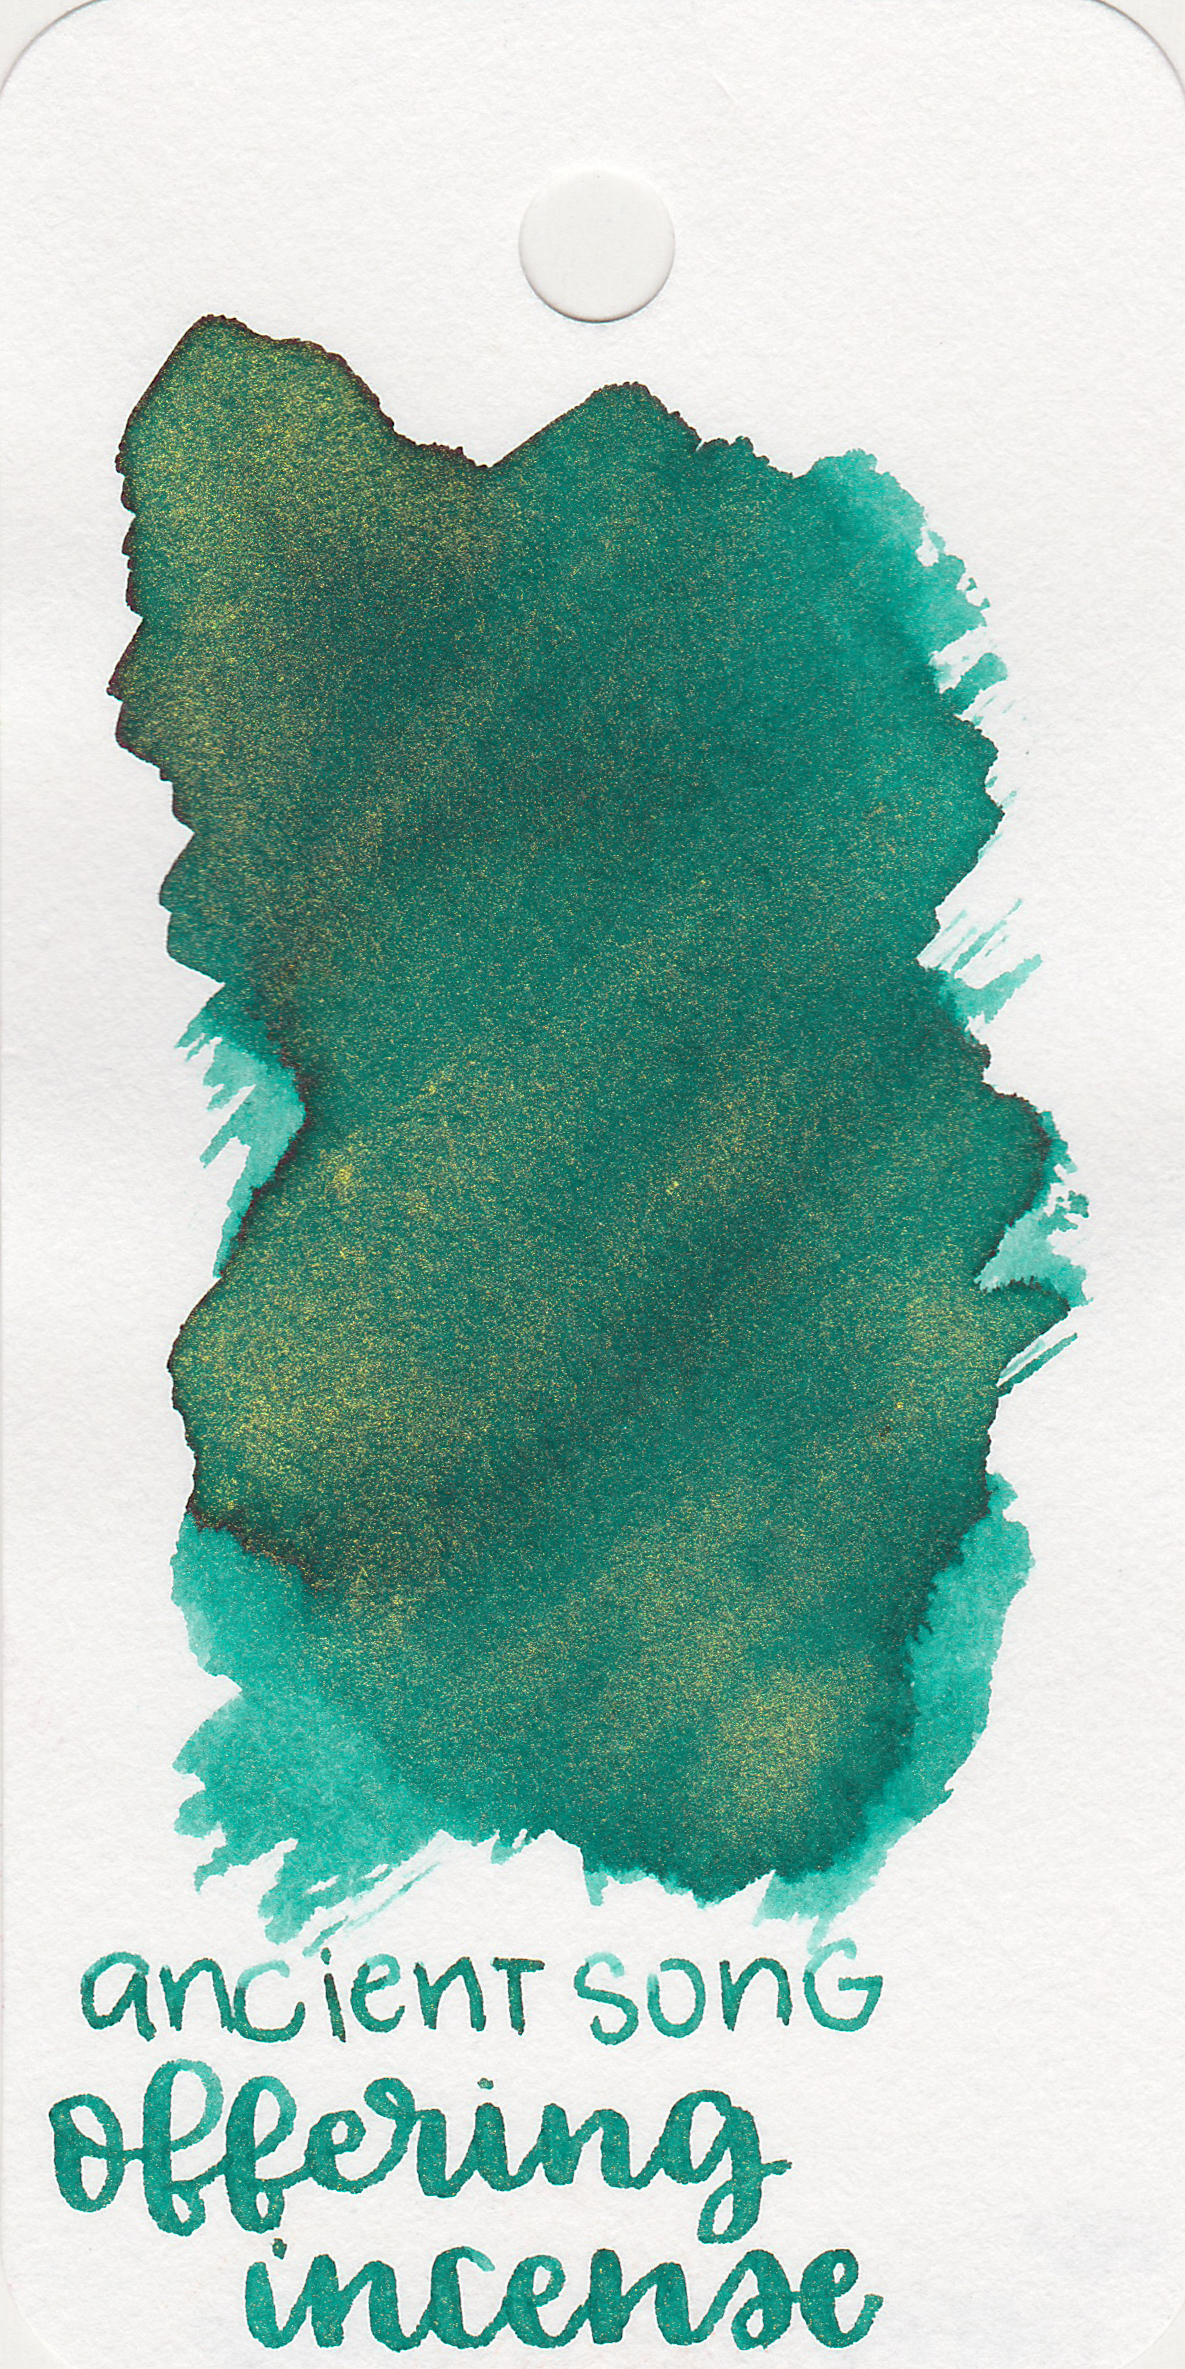 The color: - Offering Incense is in-between blue and green, so let's call it a light teal. On the Col-o-ring it looks a bit more green than it does in writing.